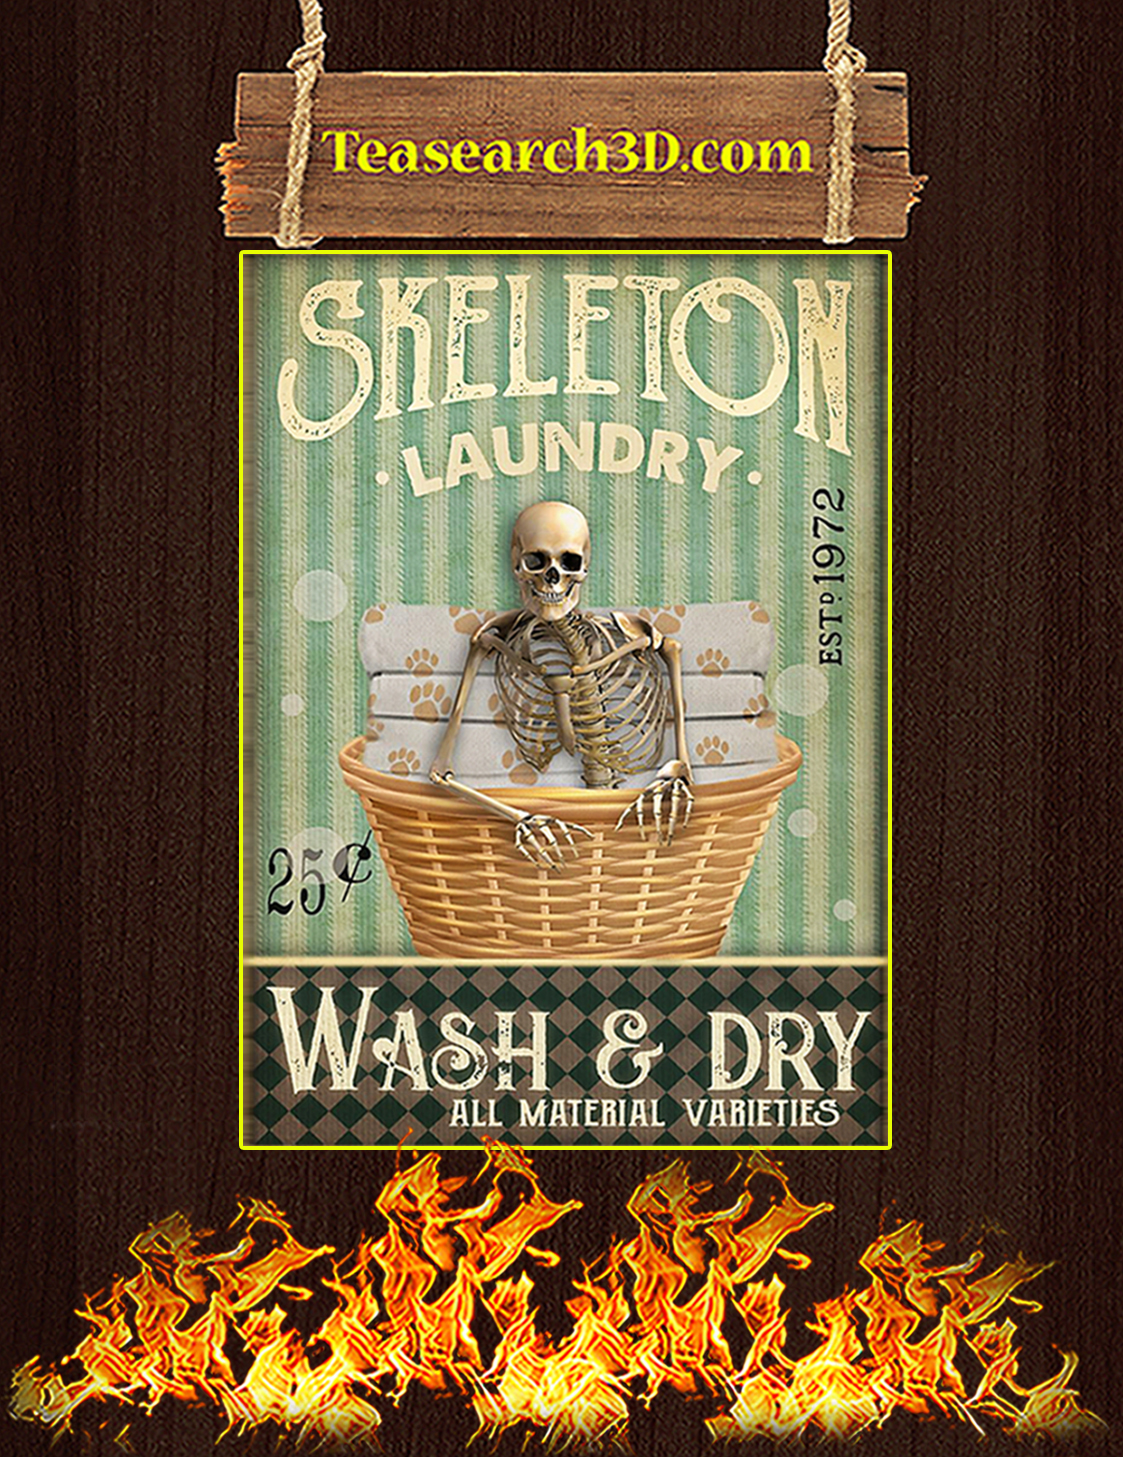 Skeleton laundry wash and dry poster A3